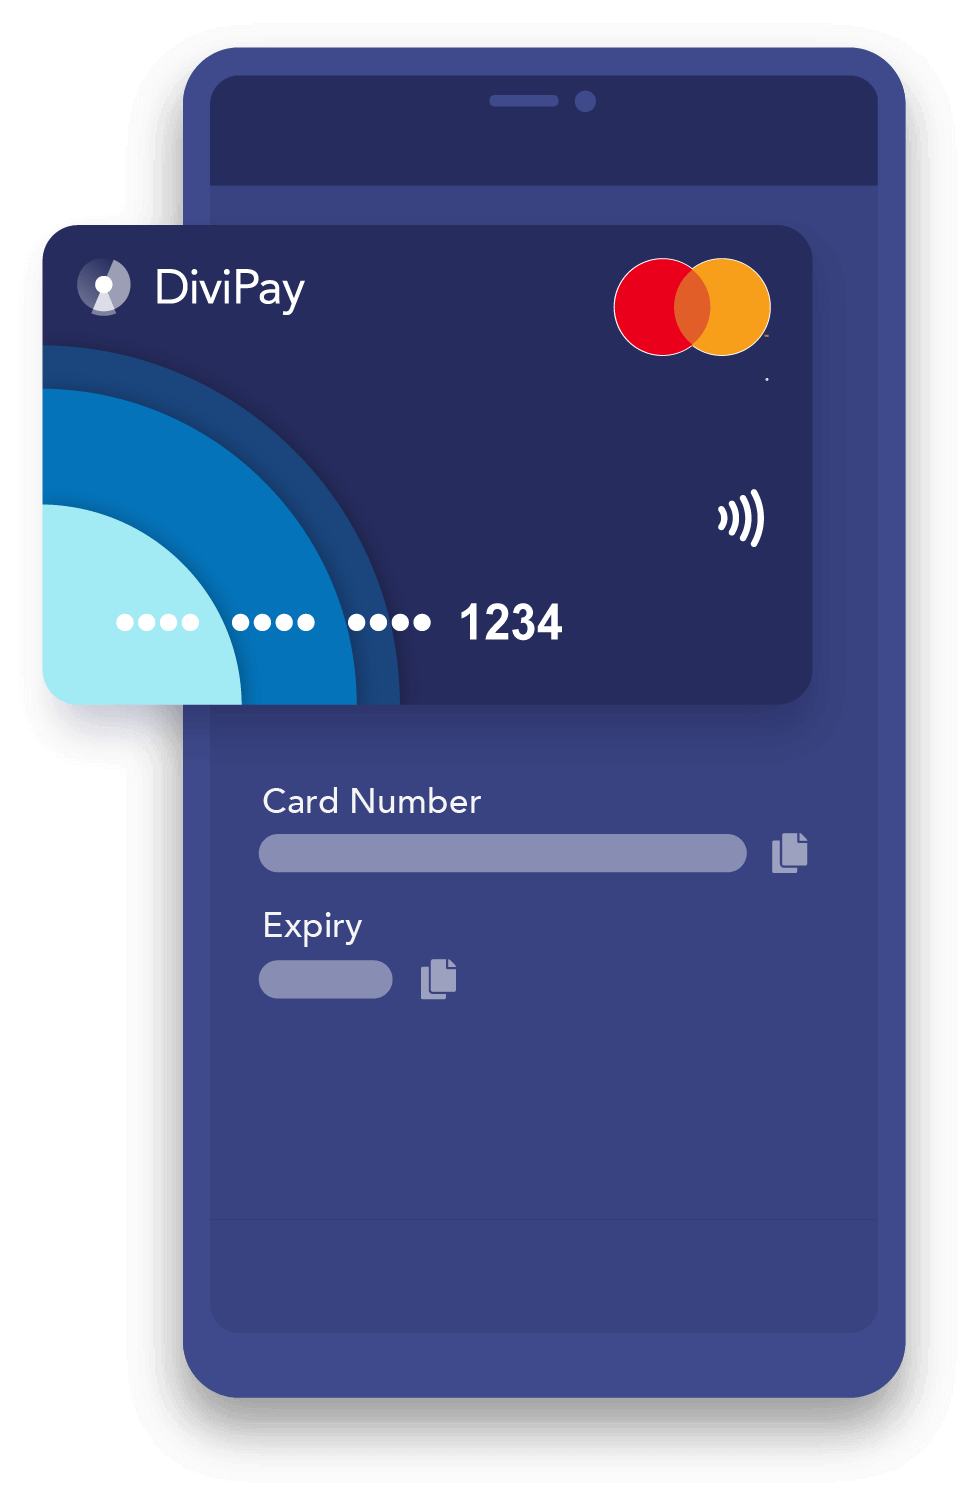 View card numbers on the DiviPay app